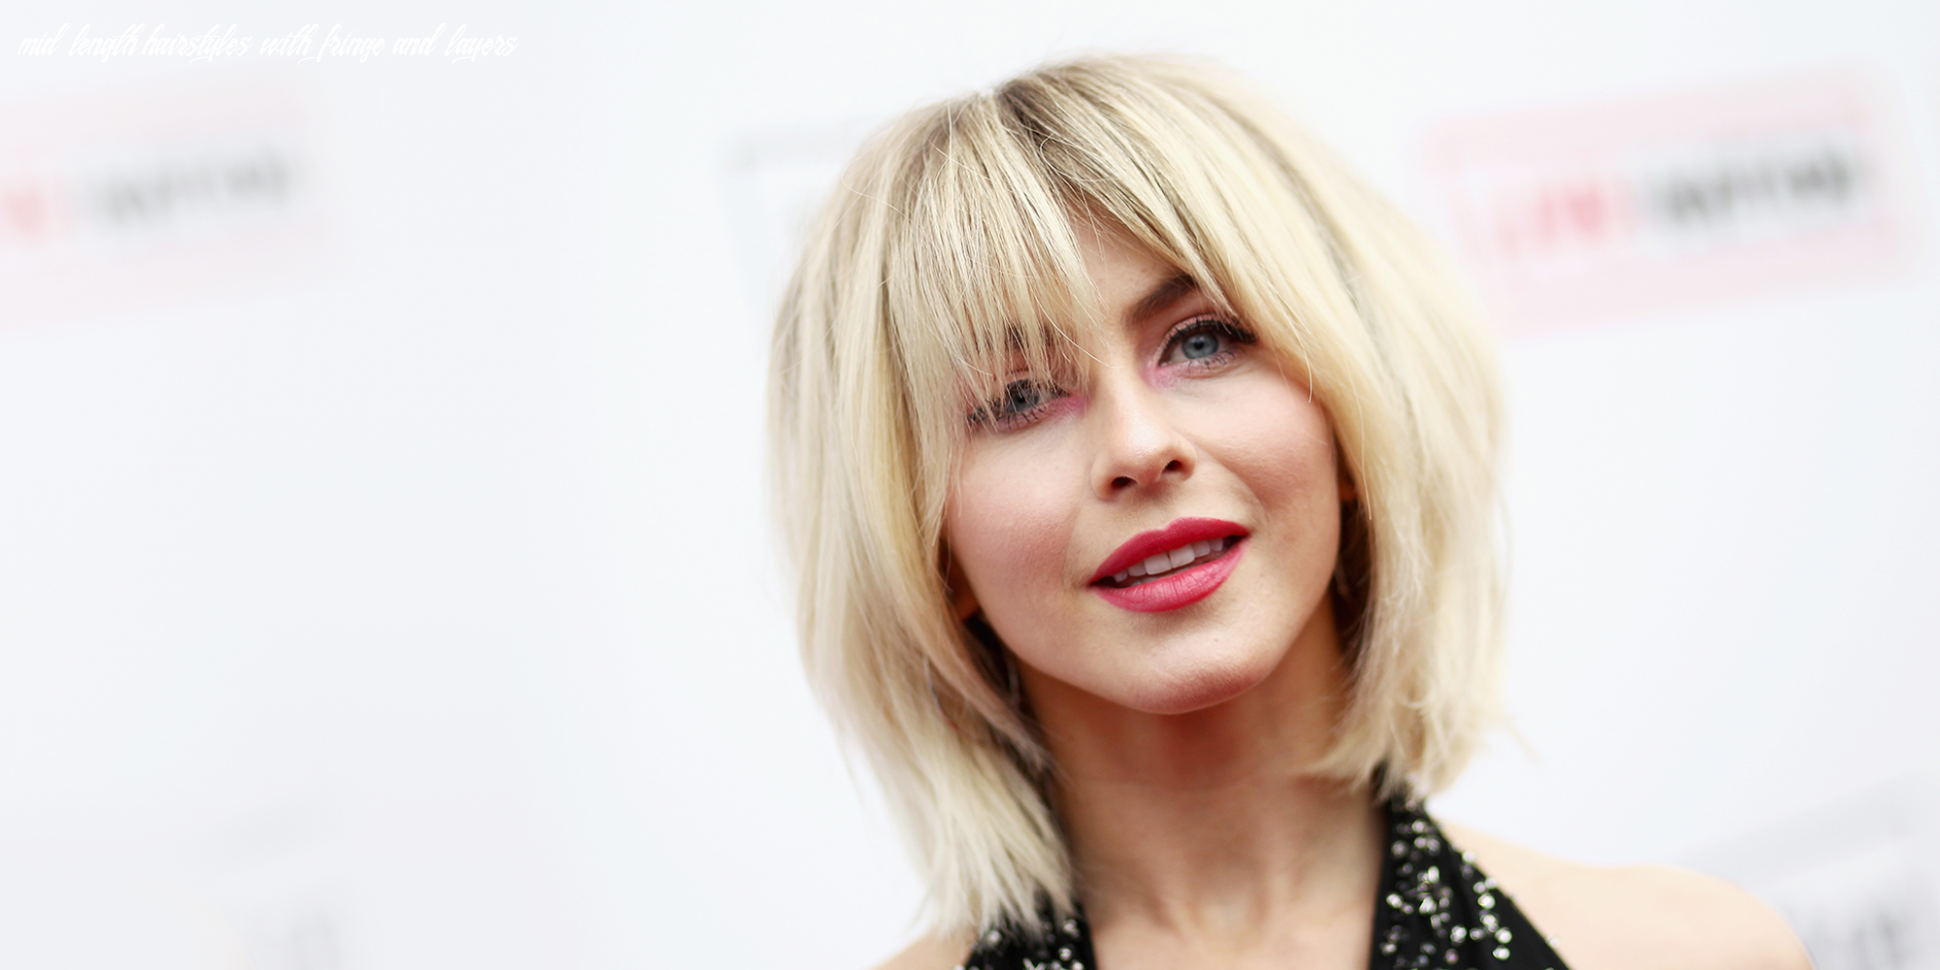 11 Best Hairstyles With Bangs - Photos of Celebrity Haircuts With ...